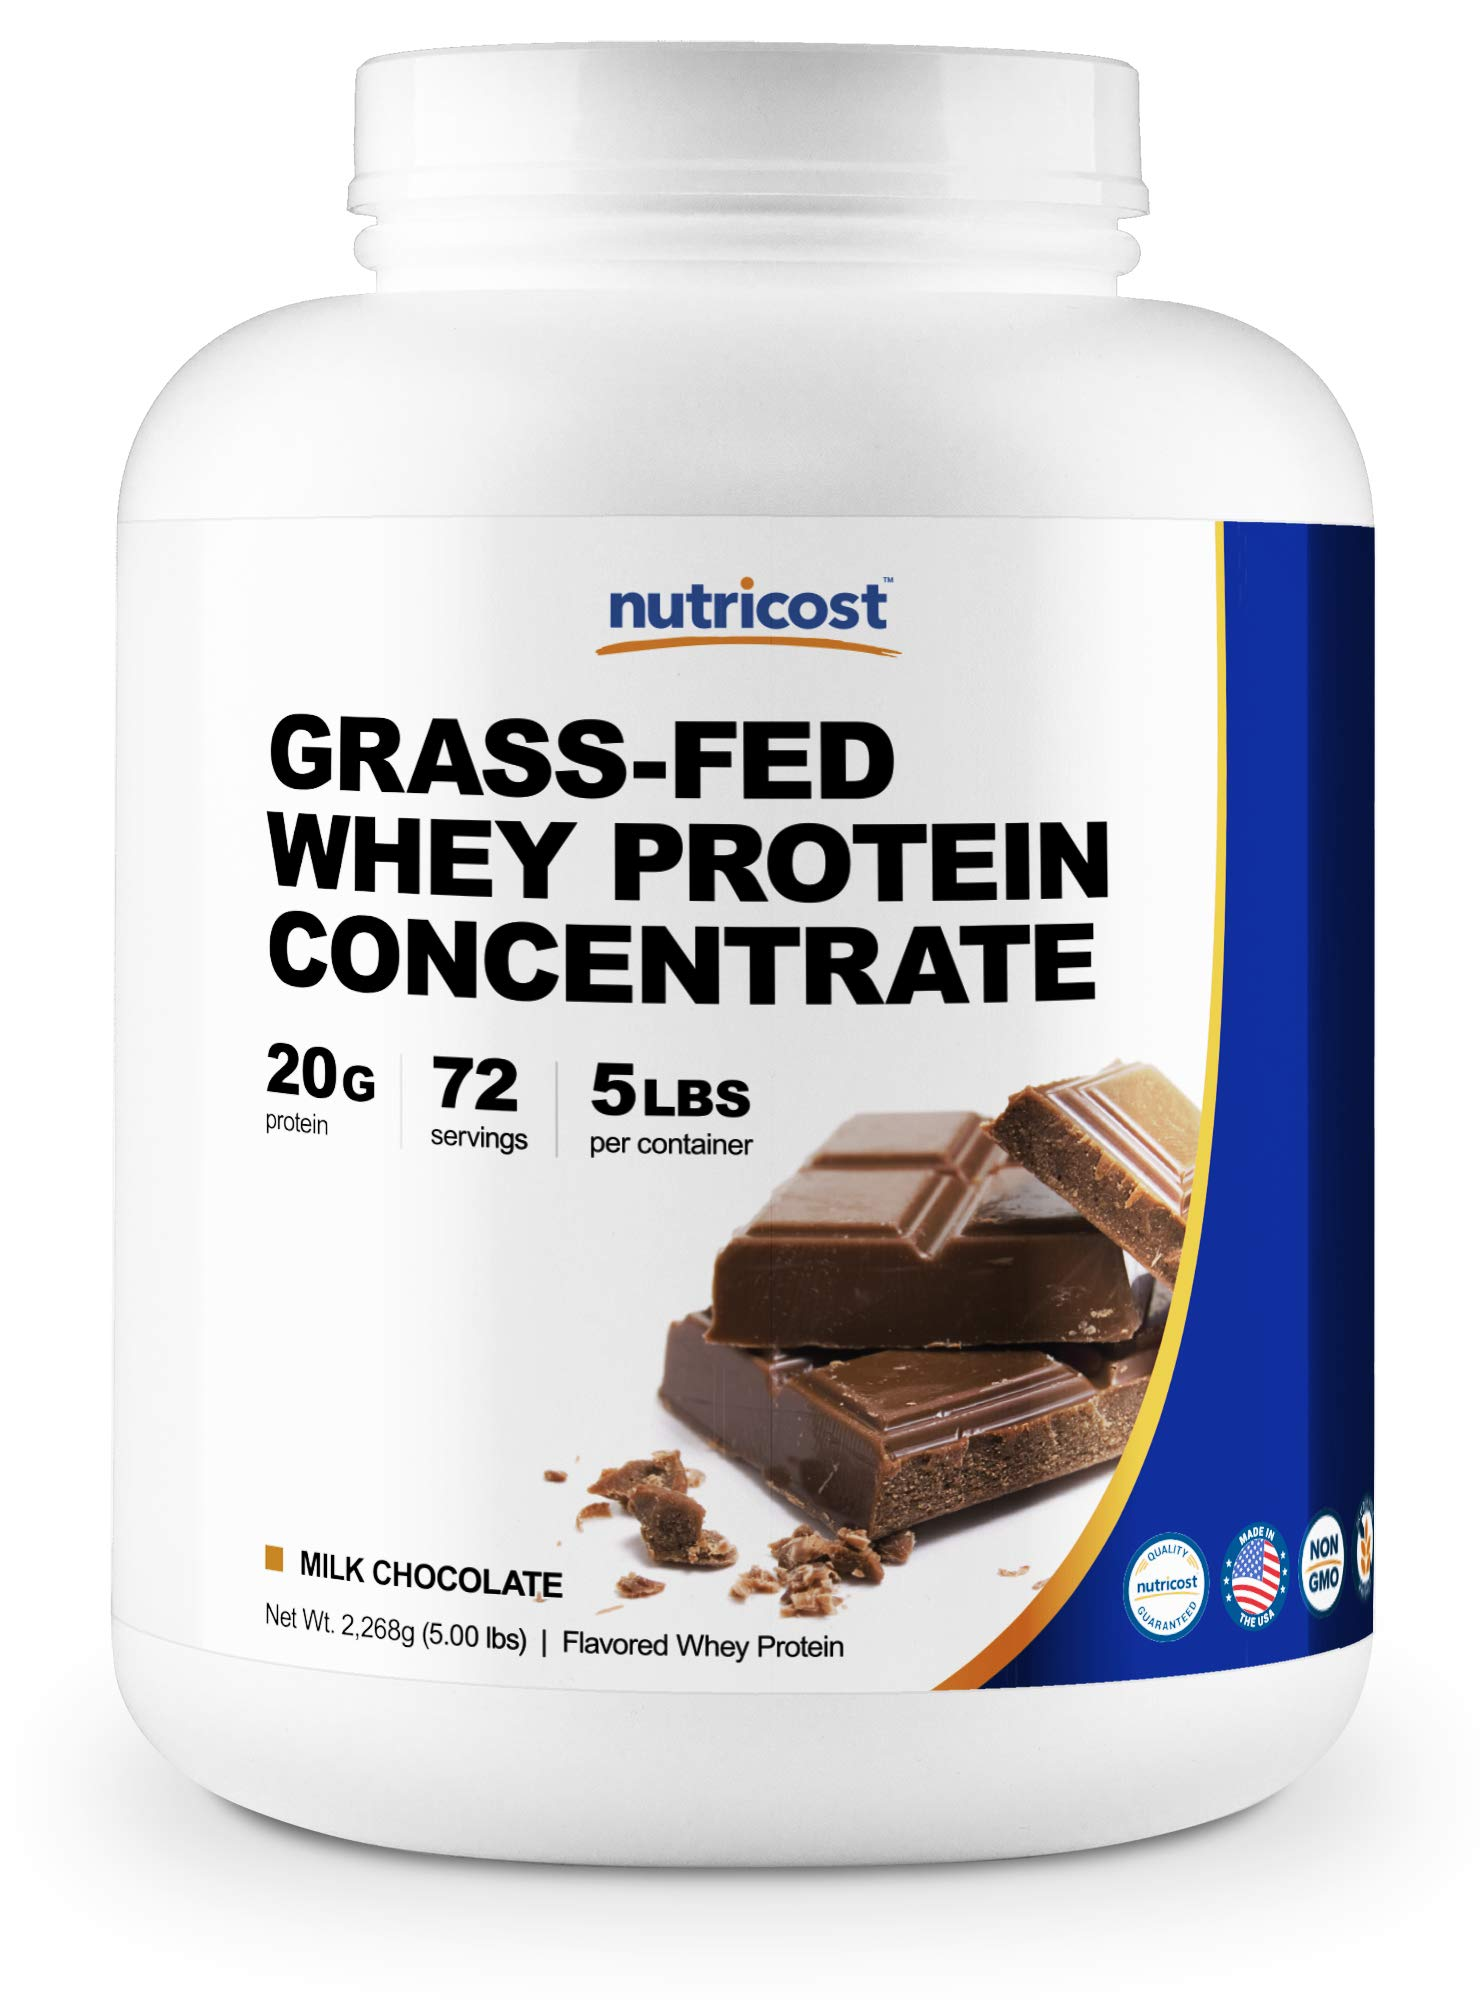 Nutricost Grass-Fed Whey Protein Concentrate (Chocolate) 5LBS - Undenatured, Non-GMO, Gluten Free, Natural Flavors by Nutricost